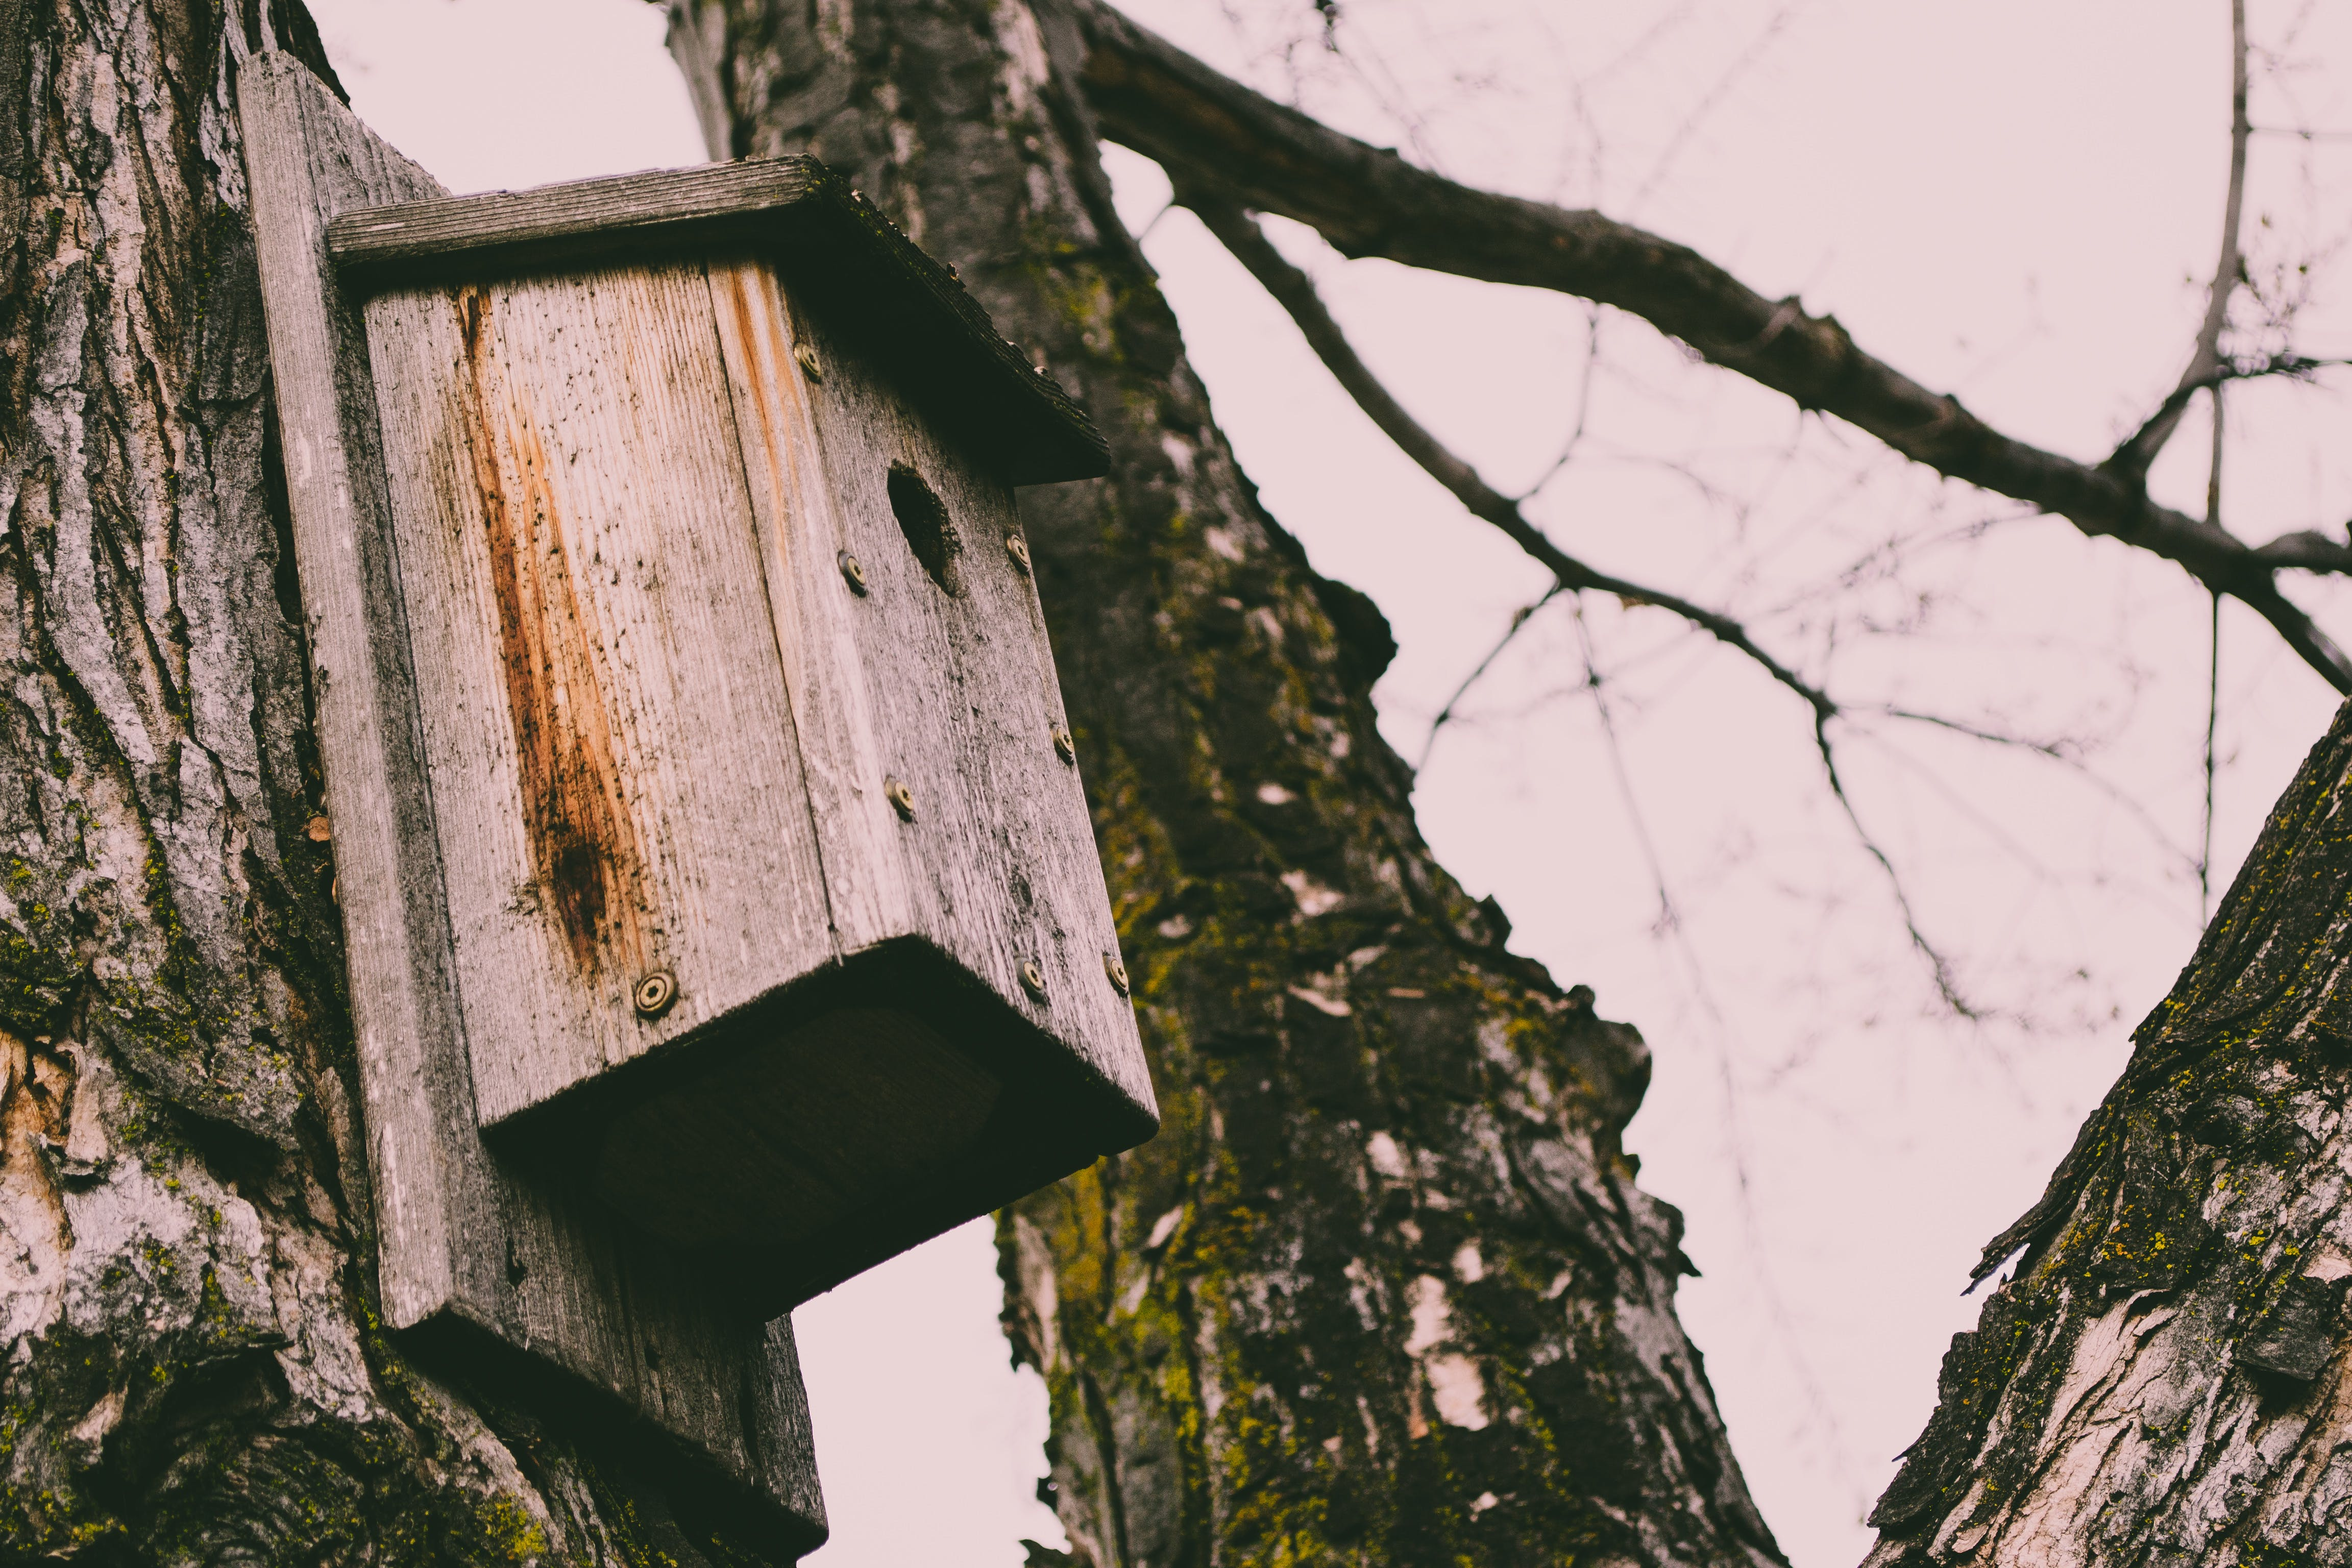 Brown Wooden Bird House on Tree